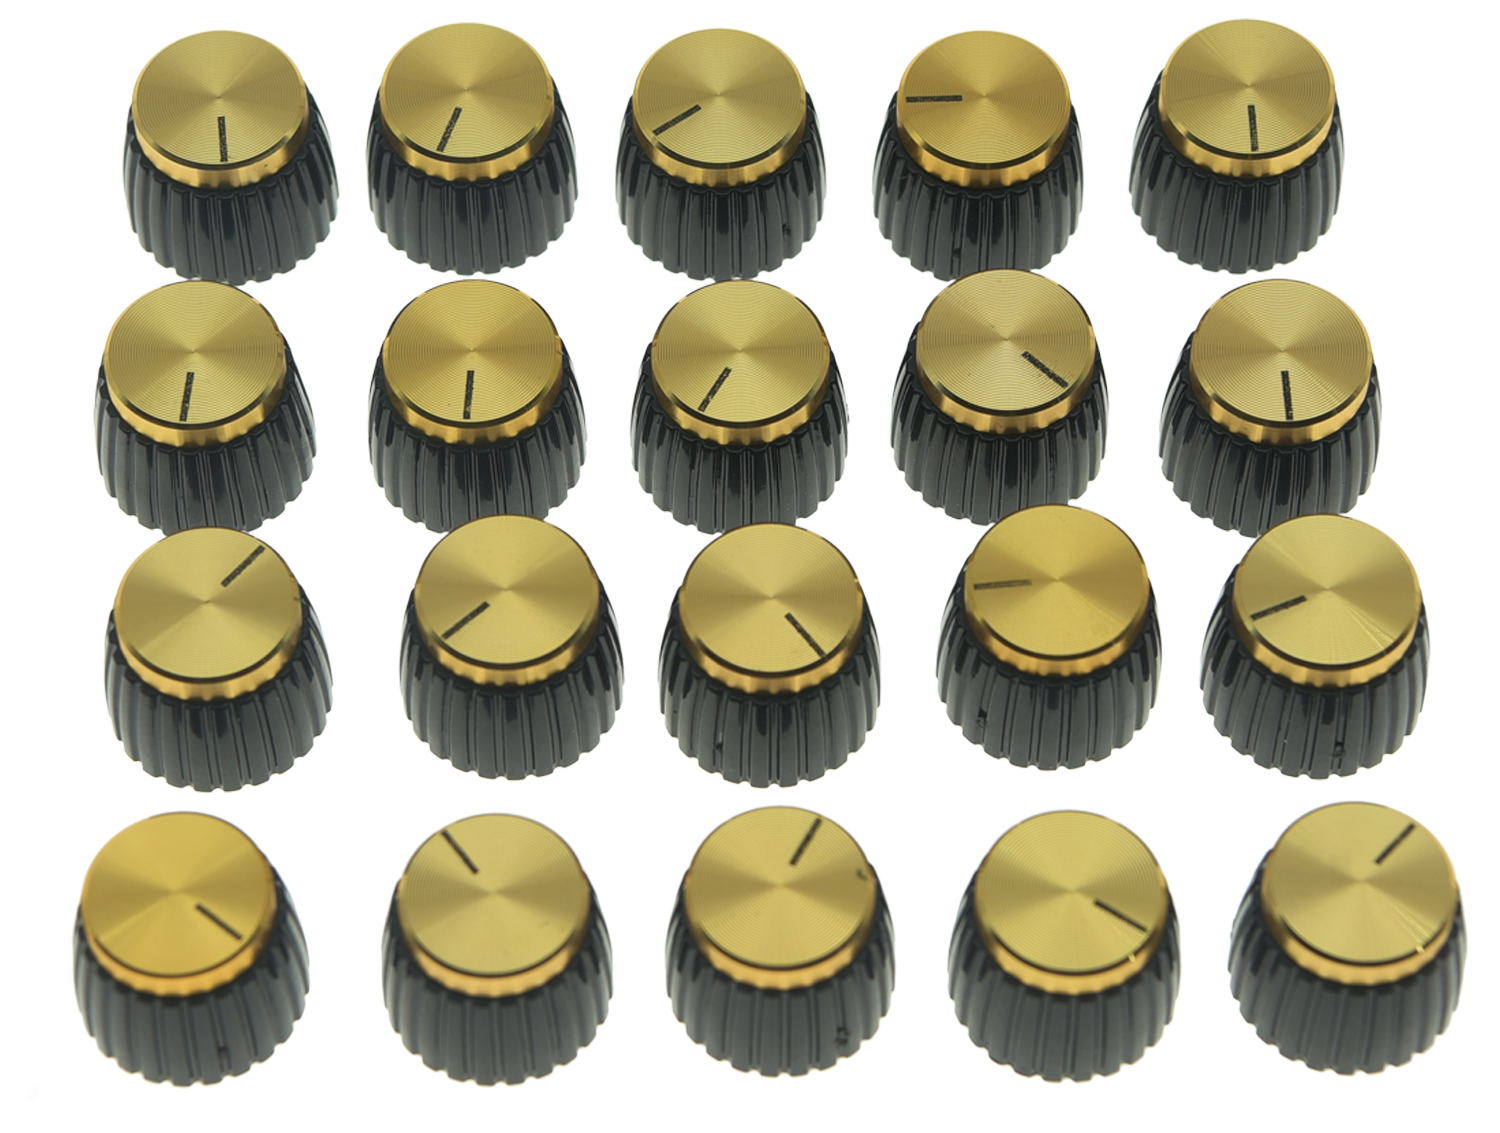 KAISH 20x Guitar AMP Amplifier Knobs Black w/ Gold Cap Push on Knobs fits Marshall kaish black p90 high power sound neck